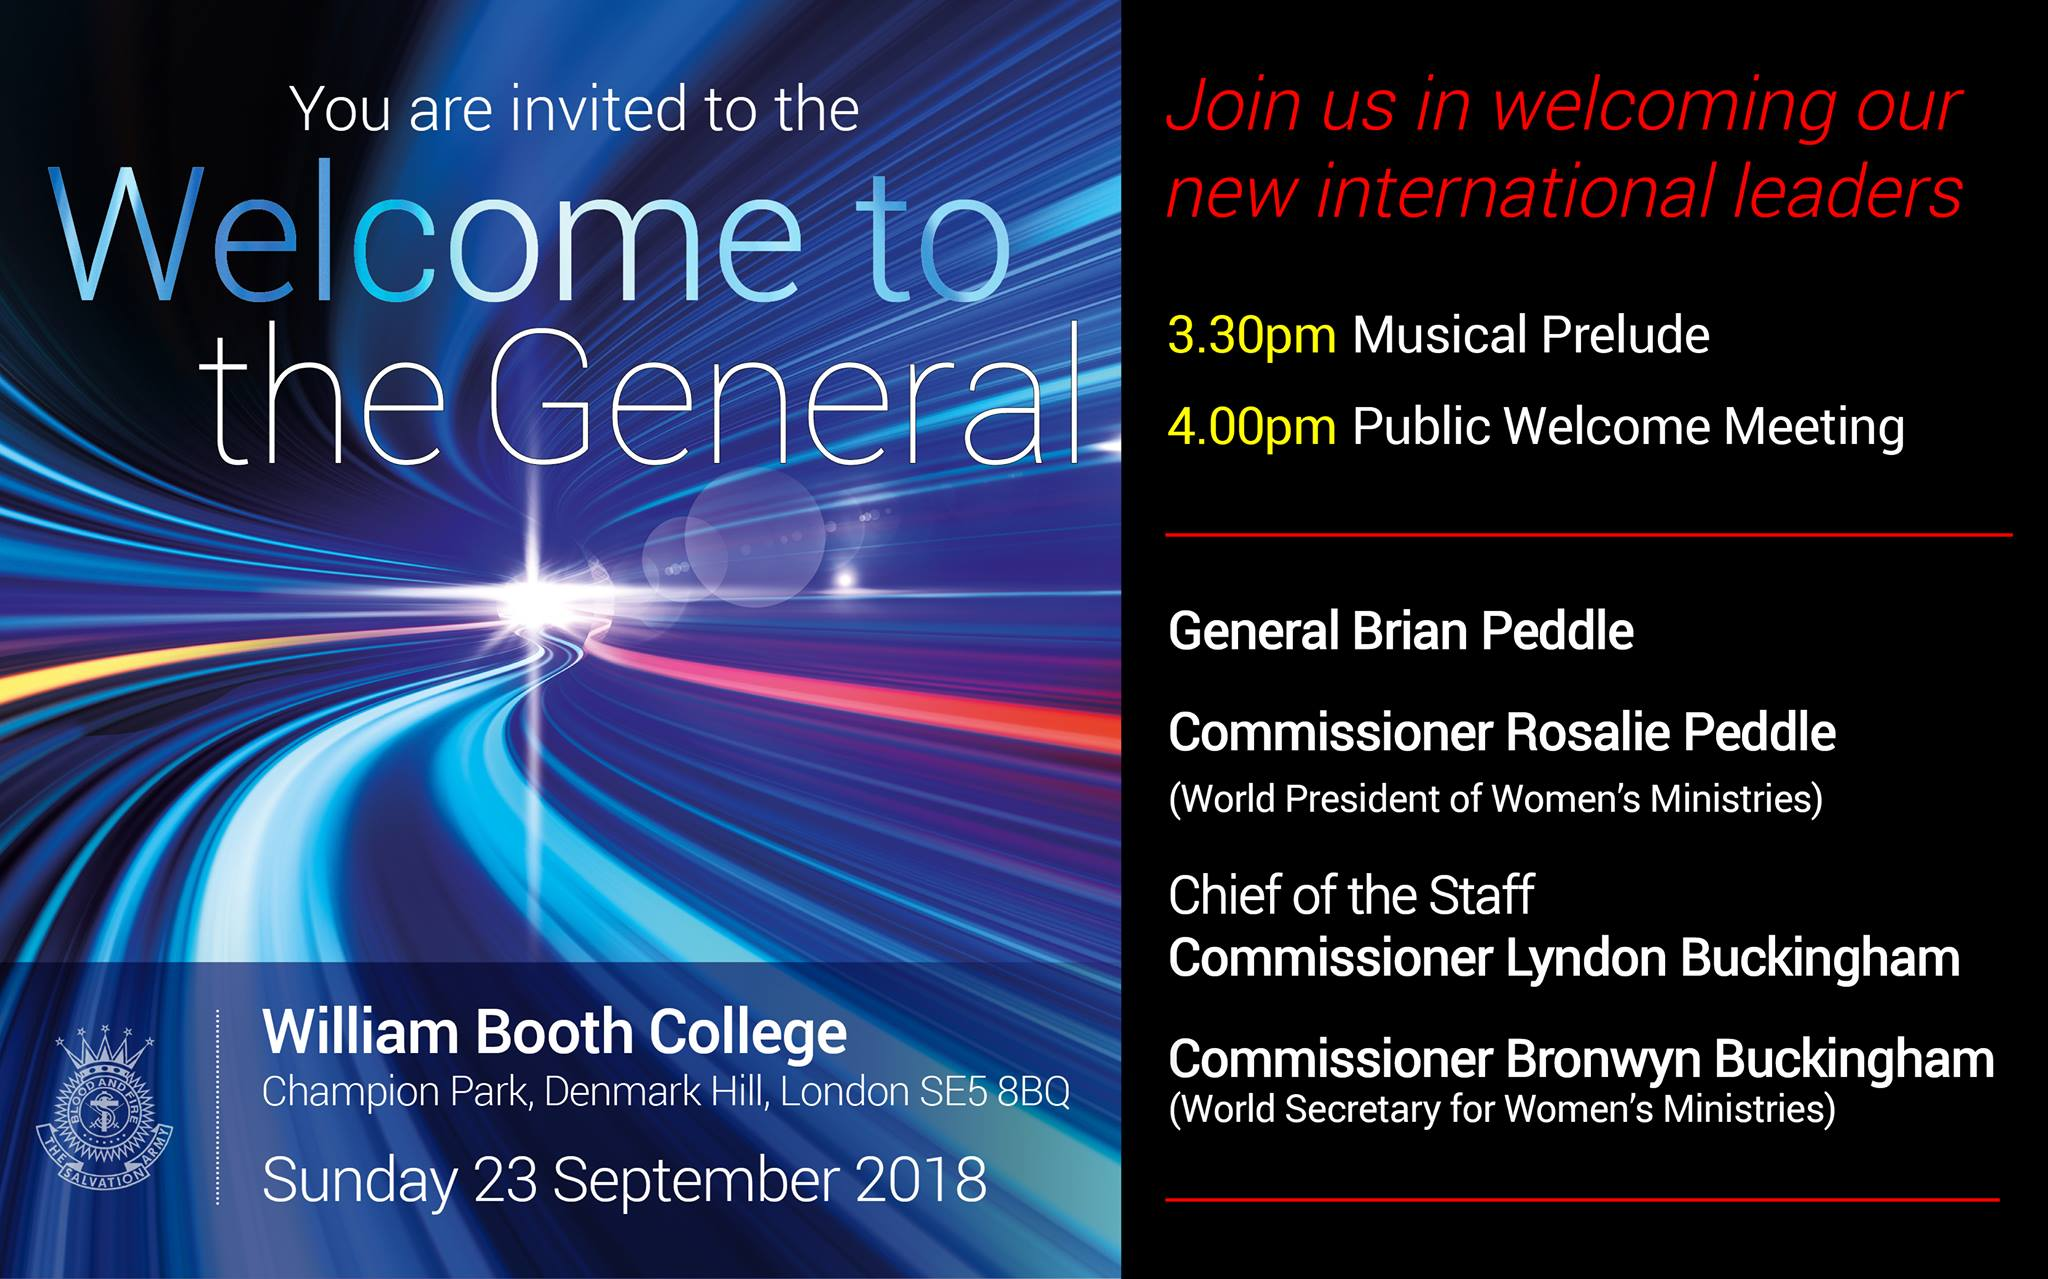 The Salvation Army International  Official Welcome to General Brian Peddle to take place on